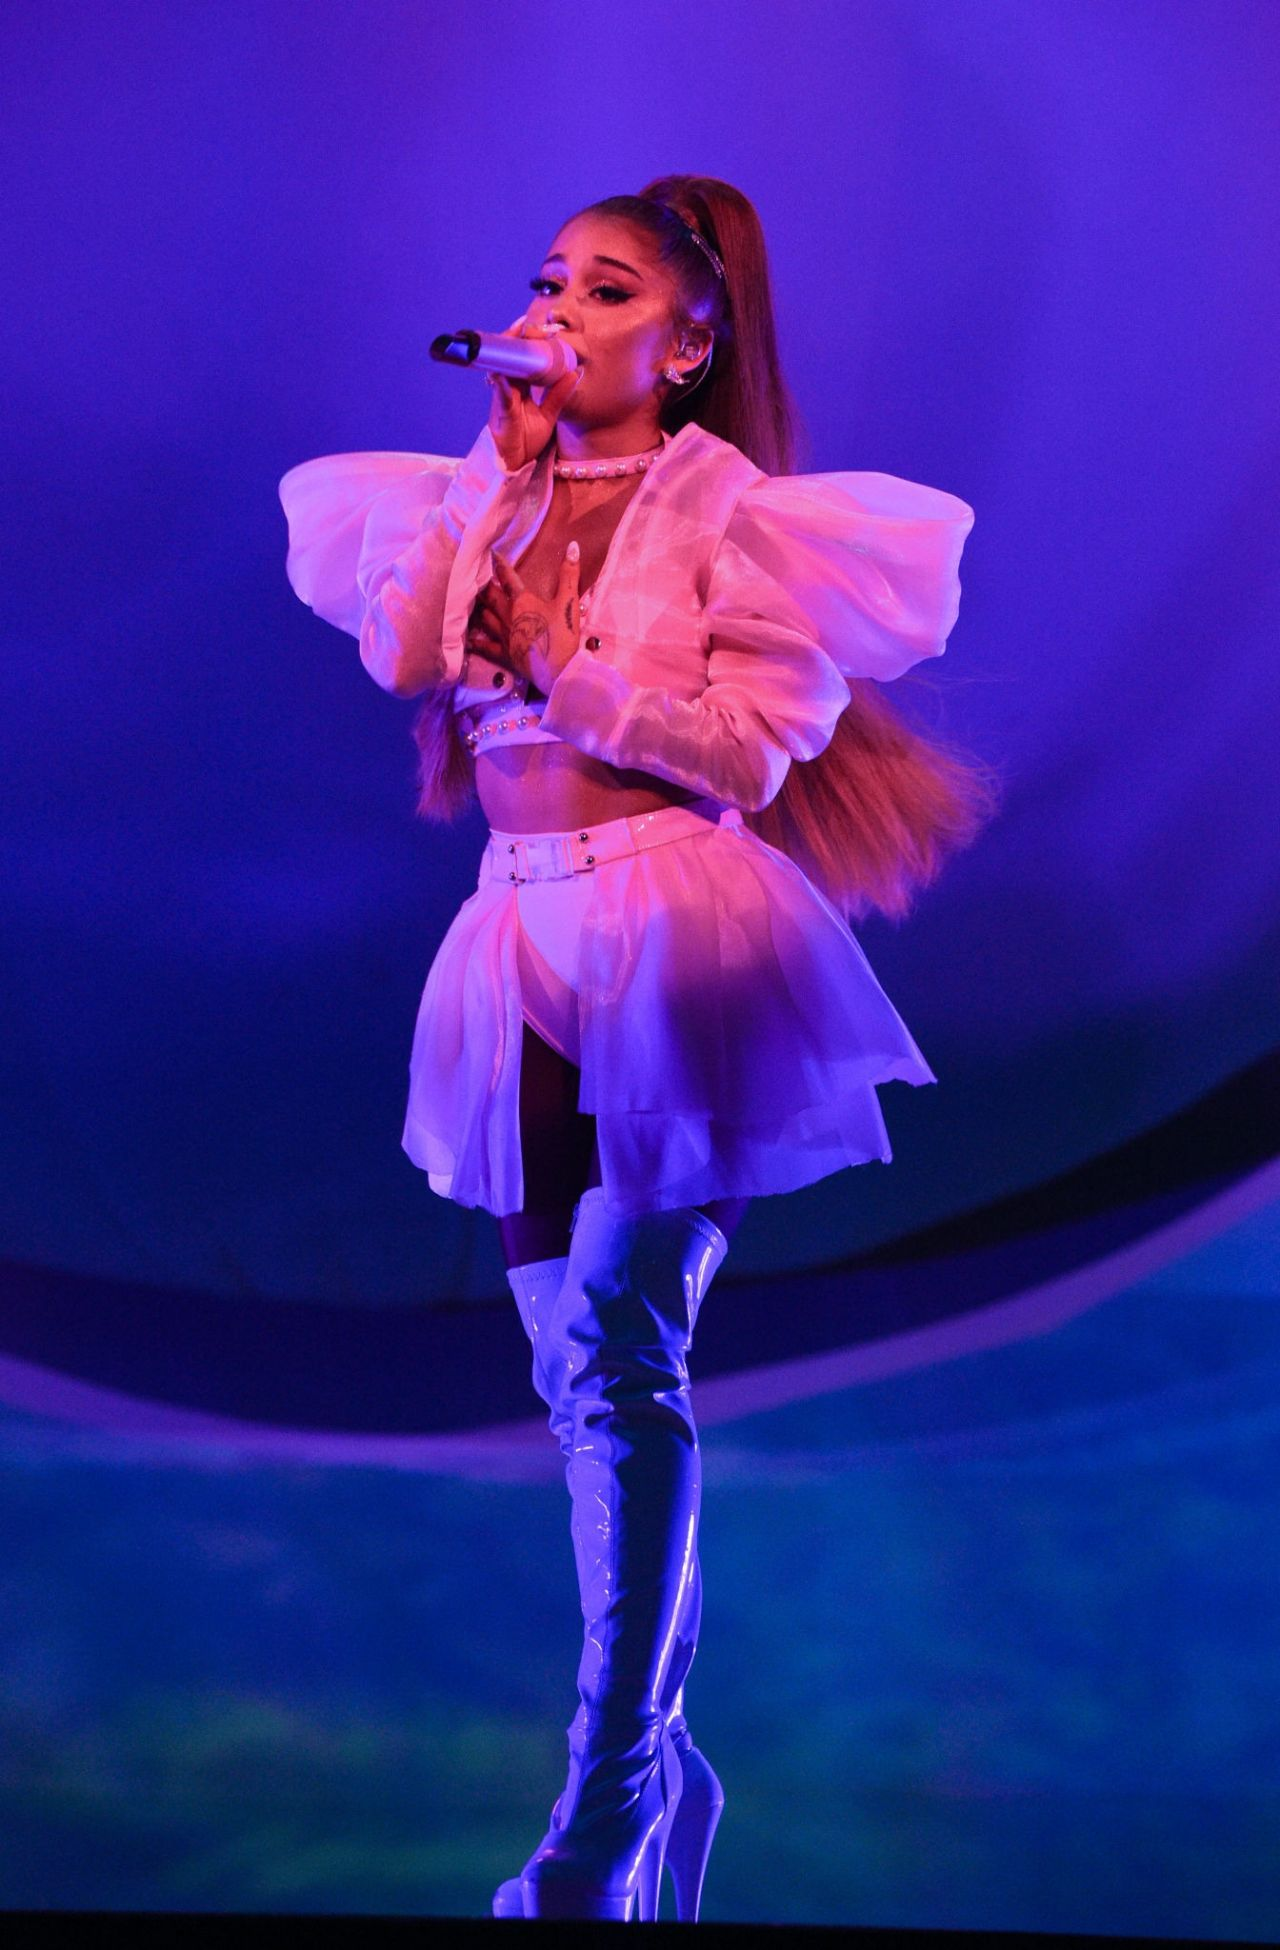 """Ariana Grande - Performs Live at the """"Sweetener World Tour ..."""